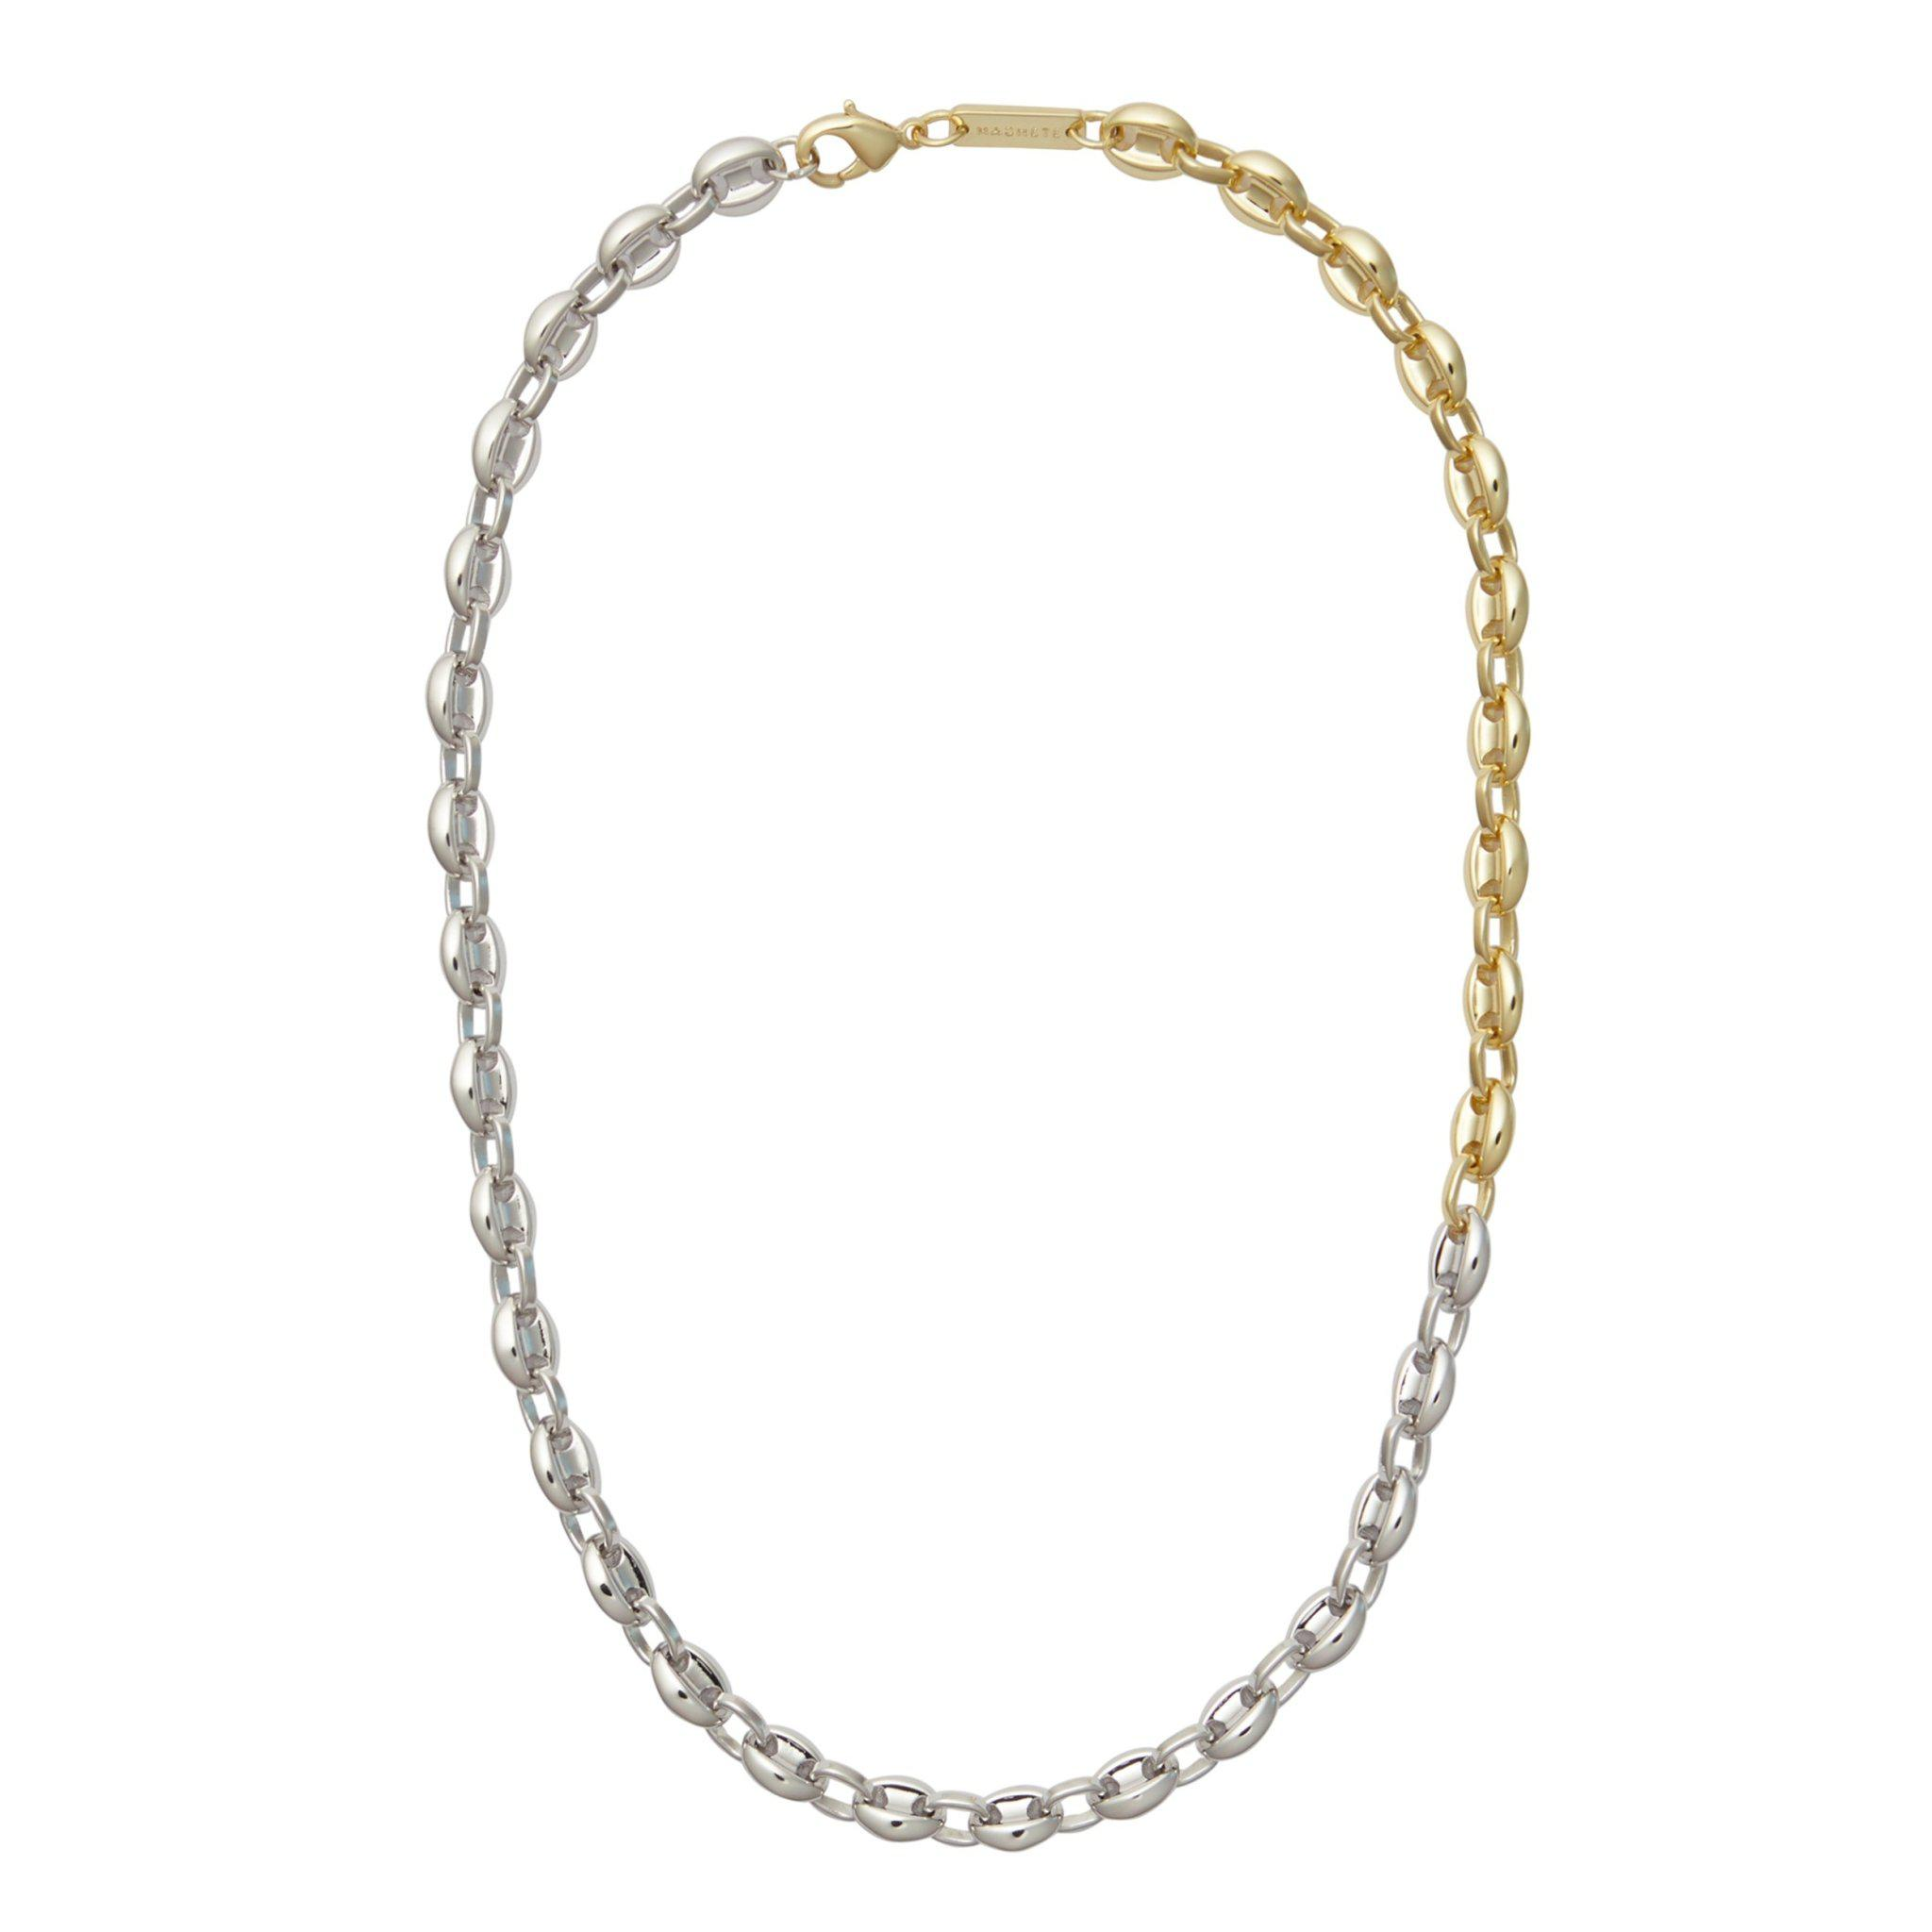 Petite Coffee Bead Necklace in 3/4 Silver